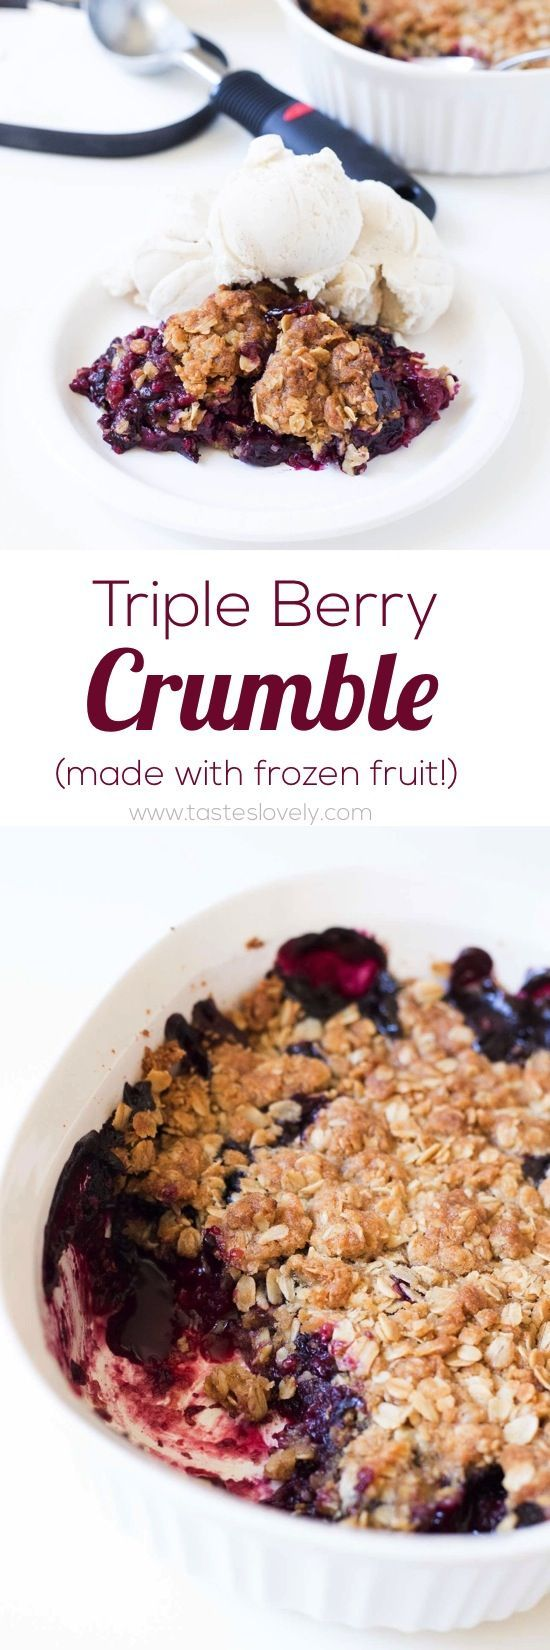 Triple Berry Crumble - made with frozen fruit, so you can enjoy this ...